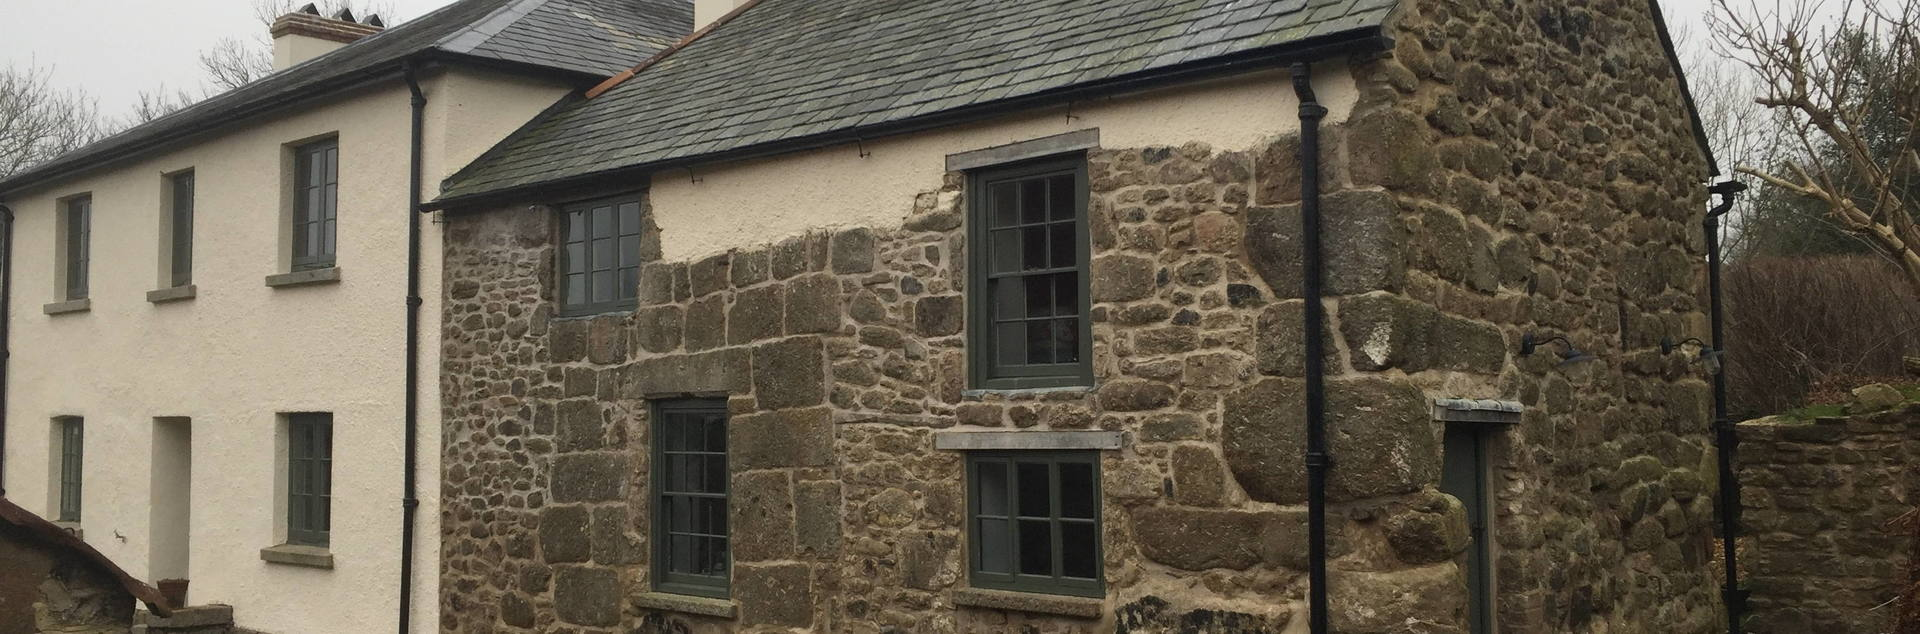 A 16th Century Barn Conversion in Dartmoor National Park